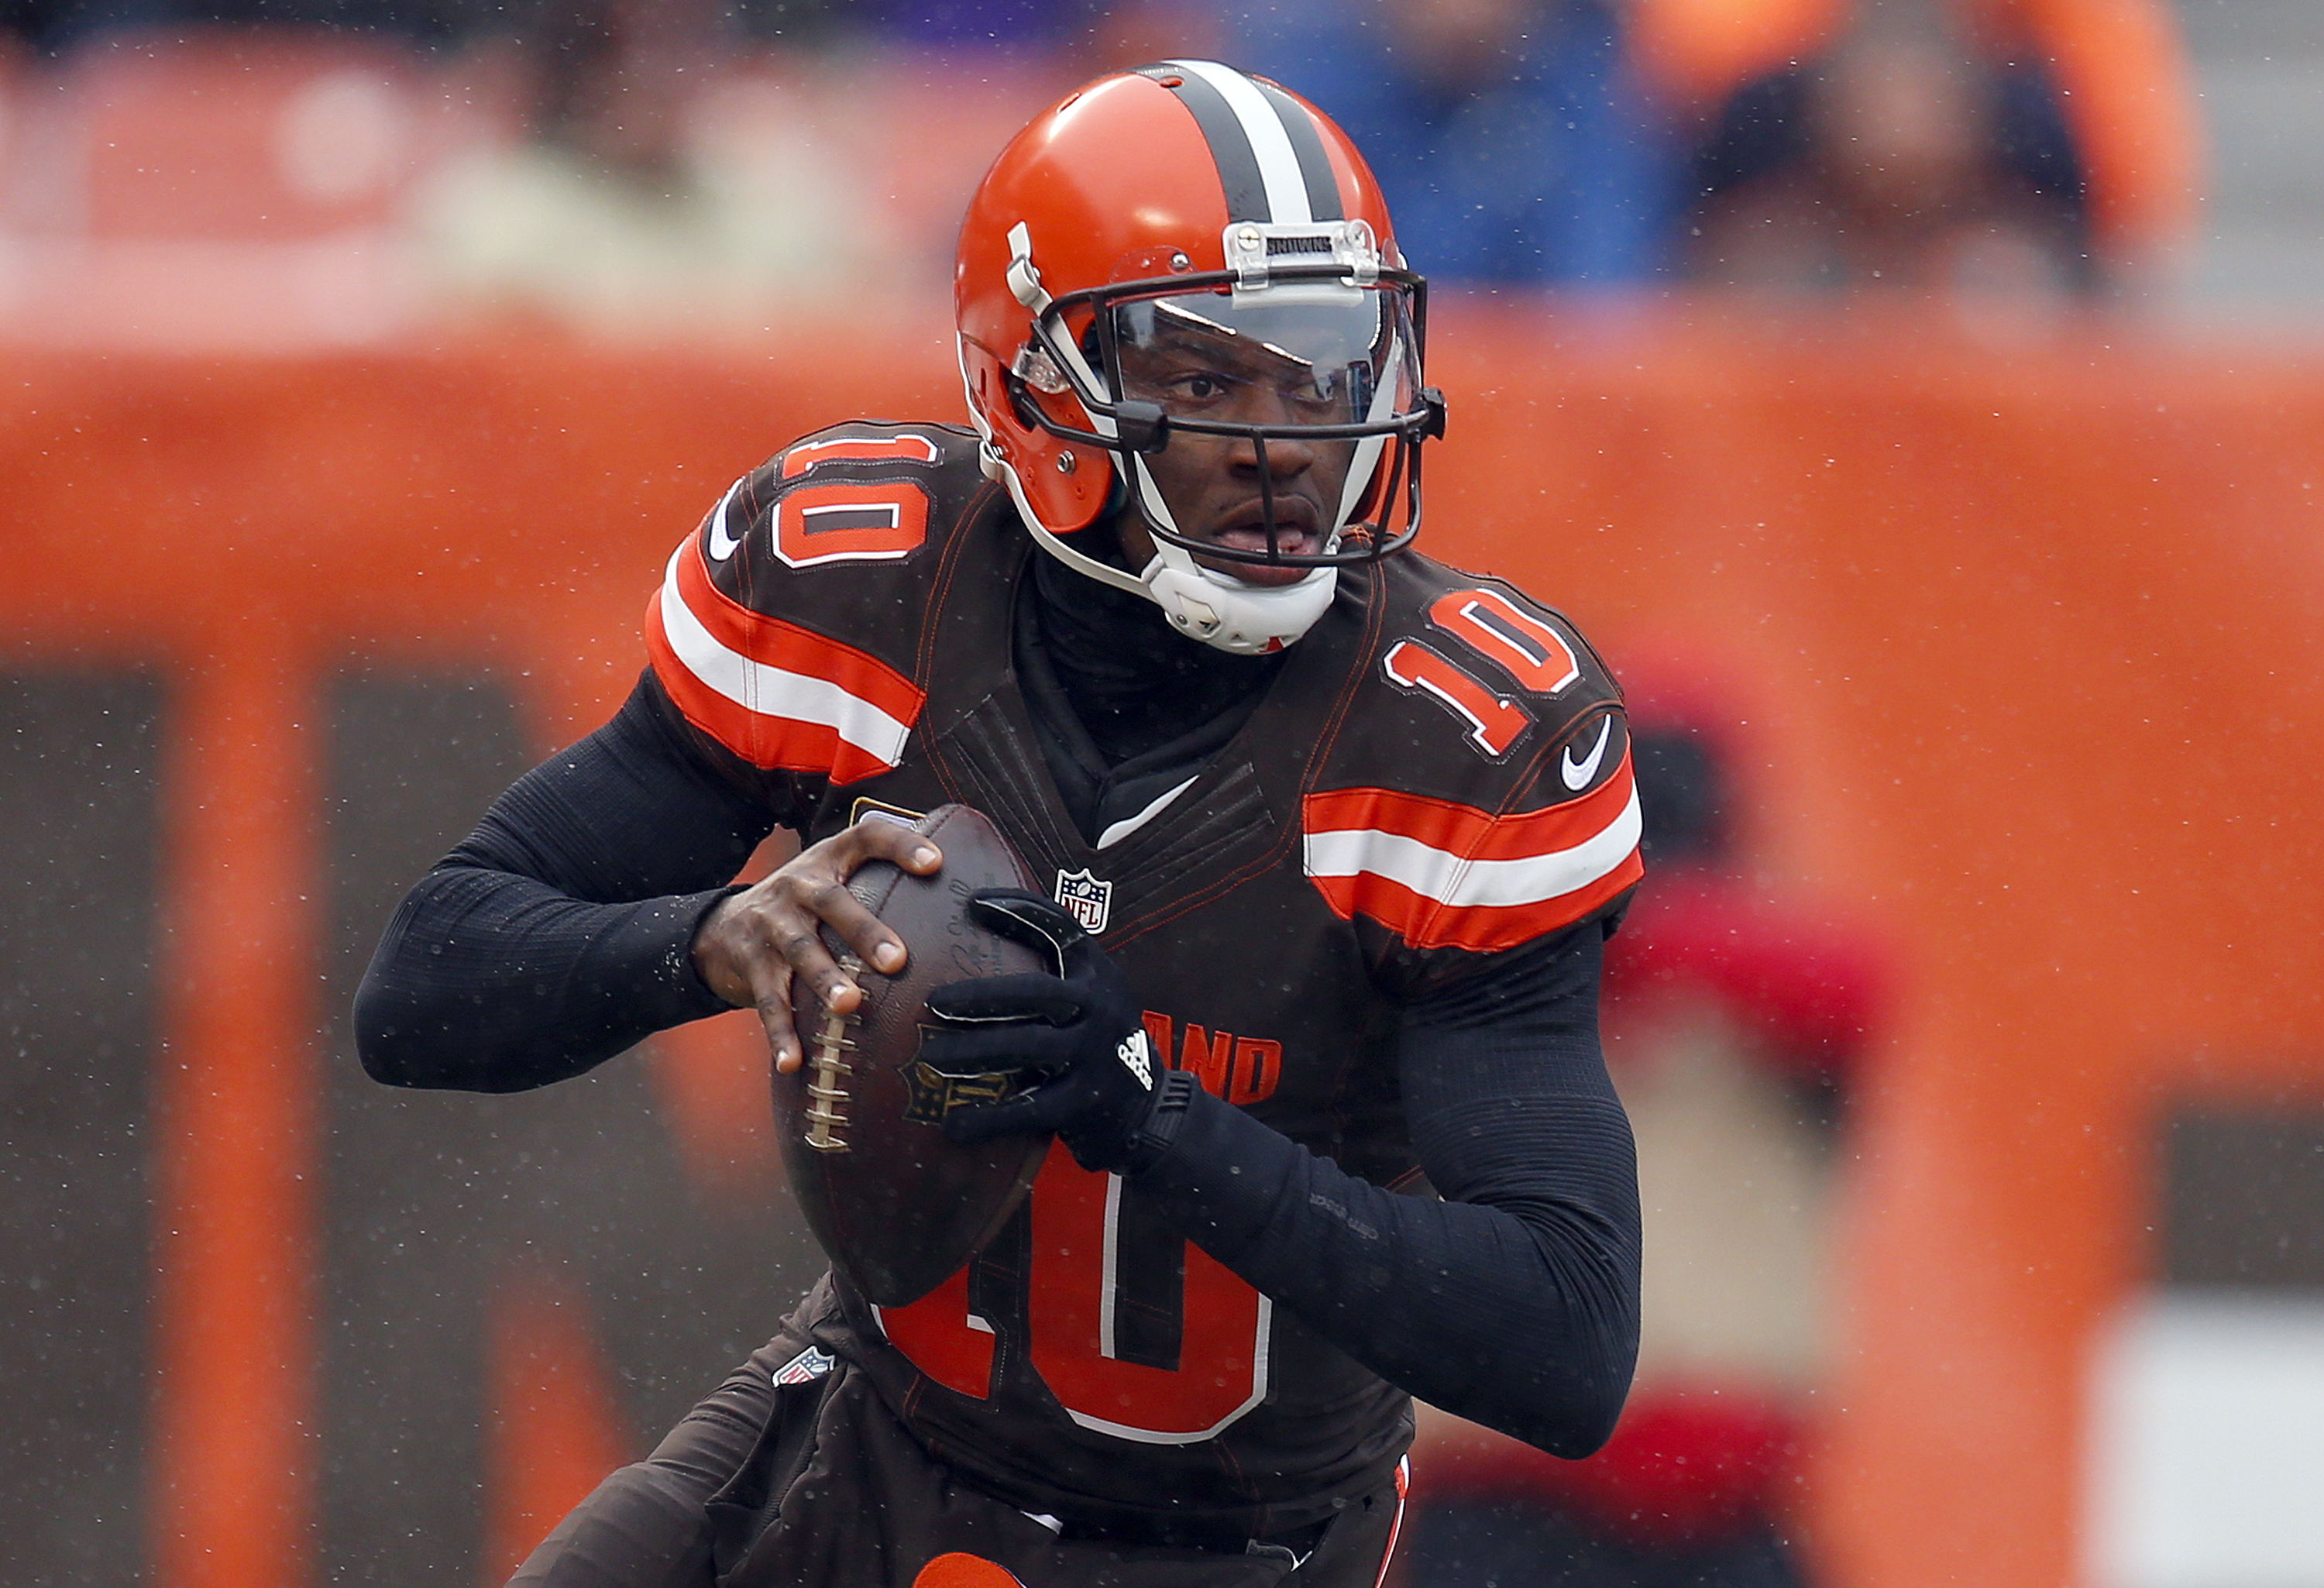 chargers vs cleveland browns, chargers browns point spread, chargers browns odds, chargers browns pick against the spread, over under, chargers browns prediction, chargers browns vegas line, chargers browns favored, chargers browns point total